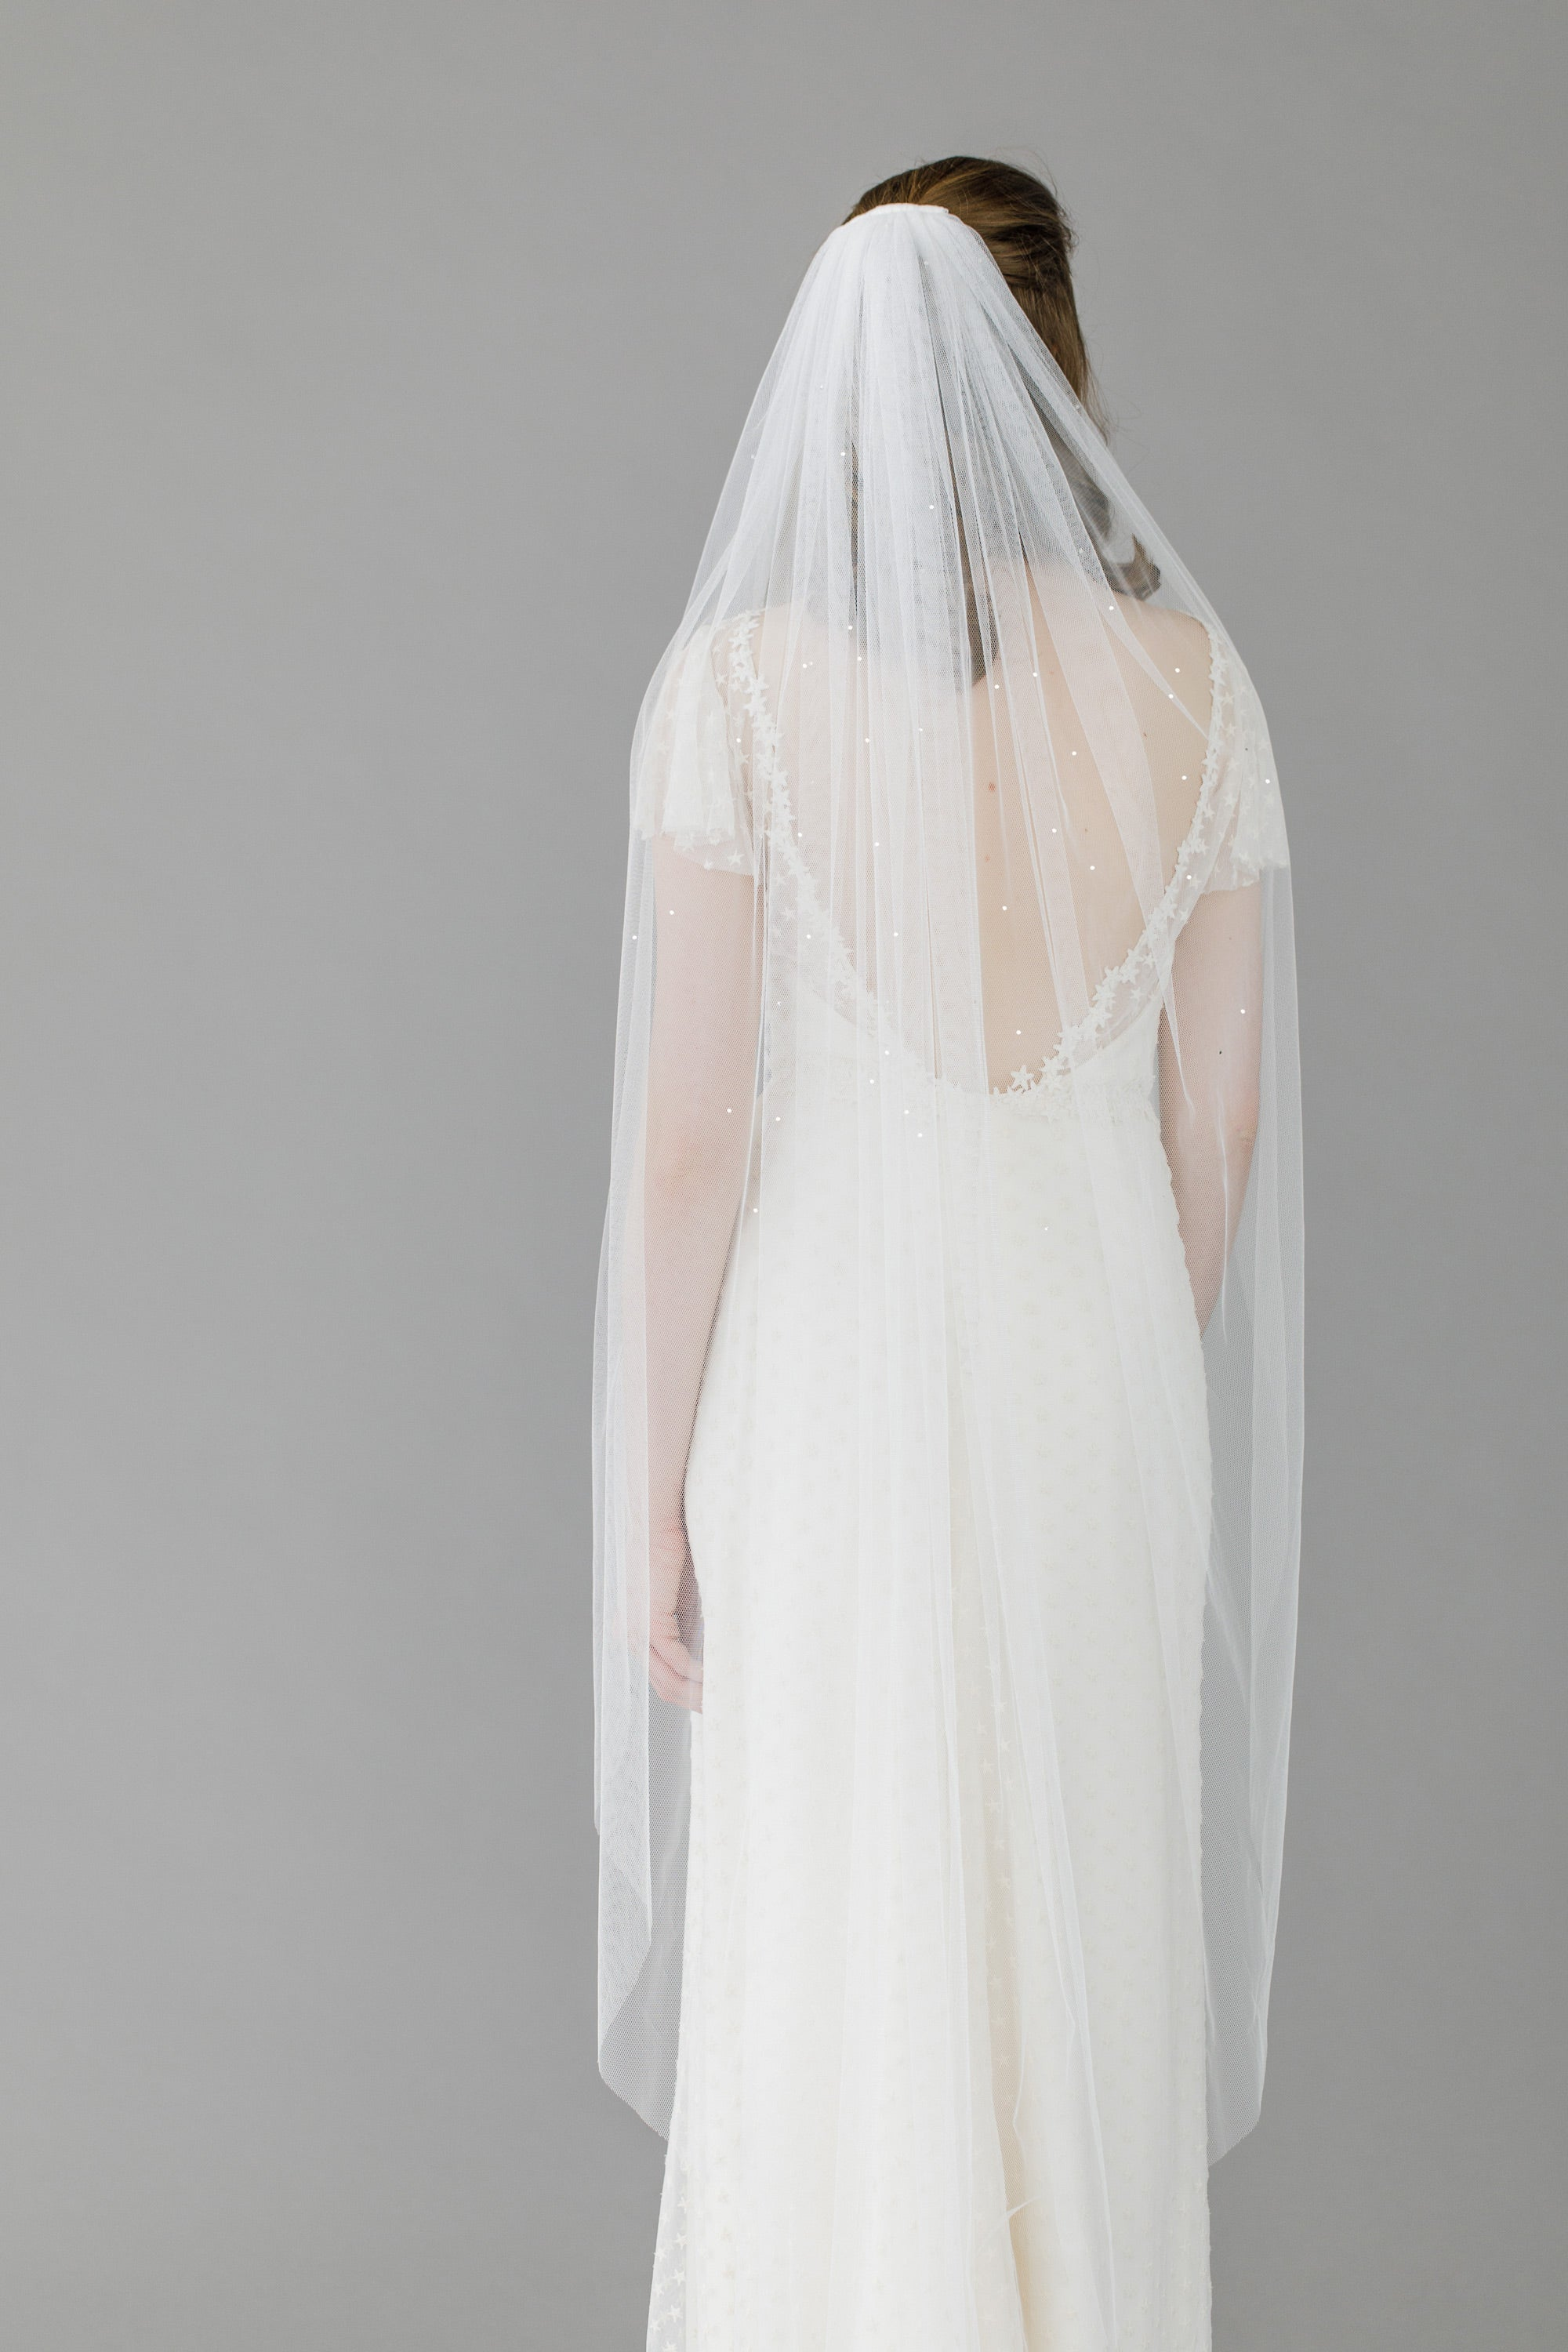 ballet length wedding veil